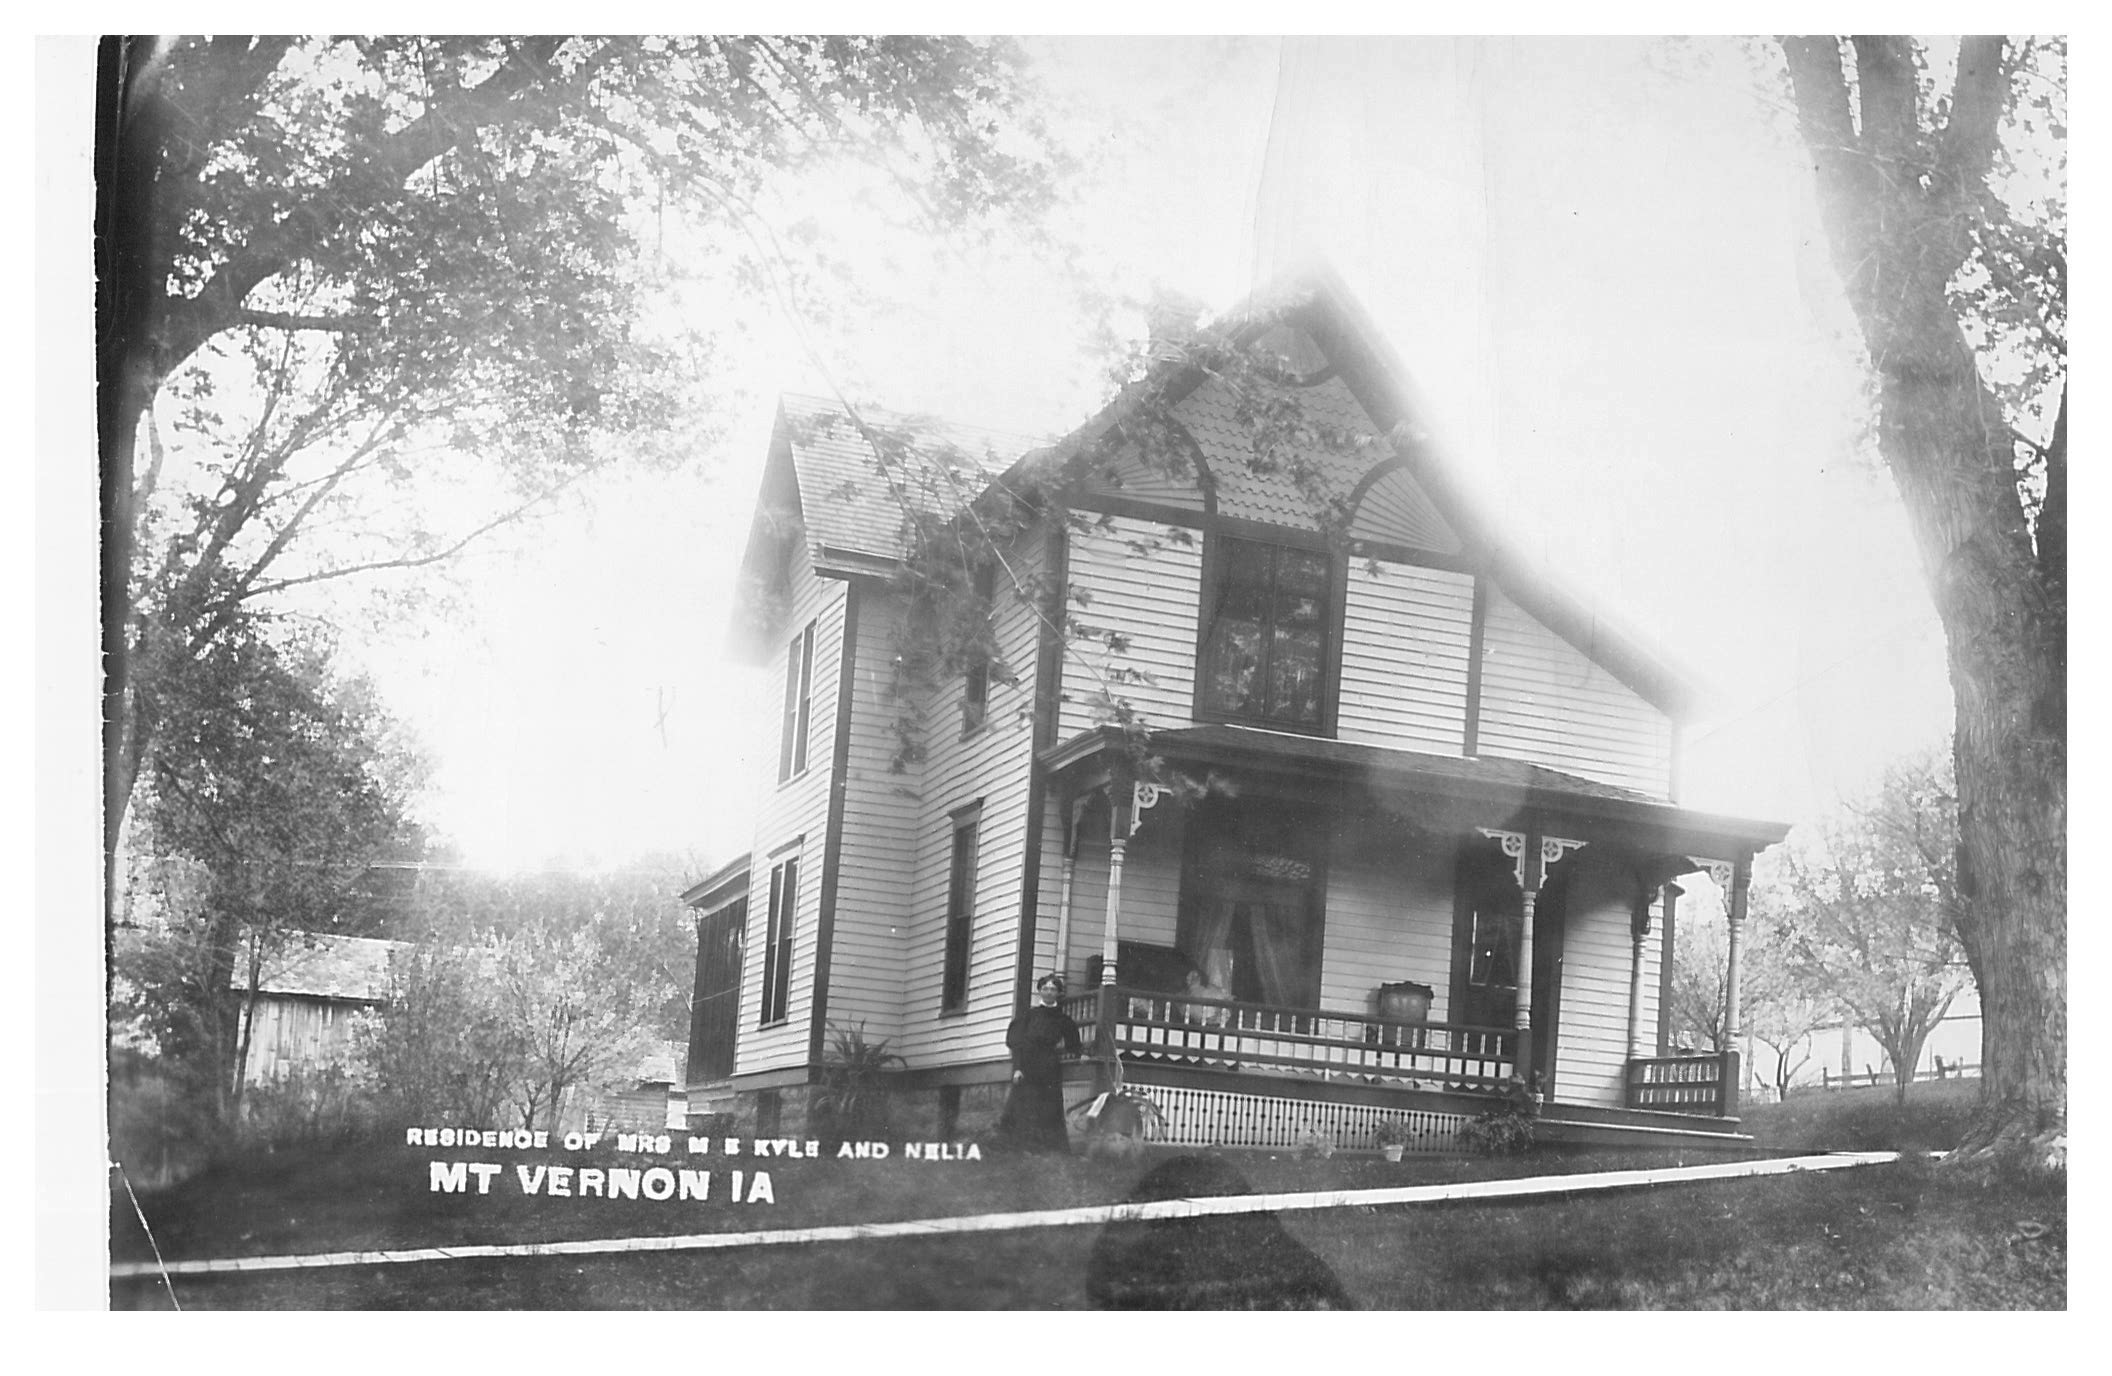 photo of Residence of Mrs. M. E. Kyle and Nelia